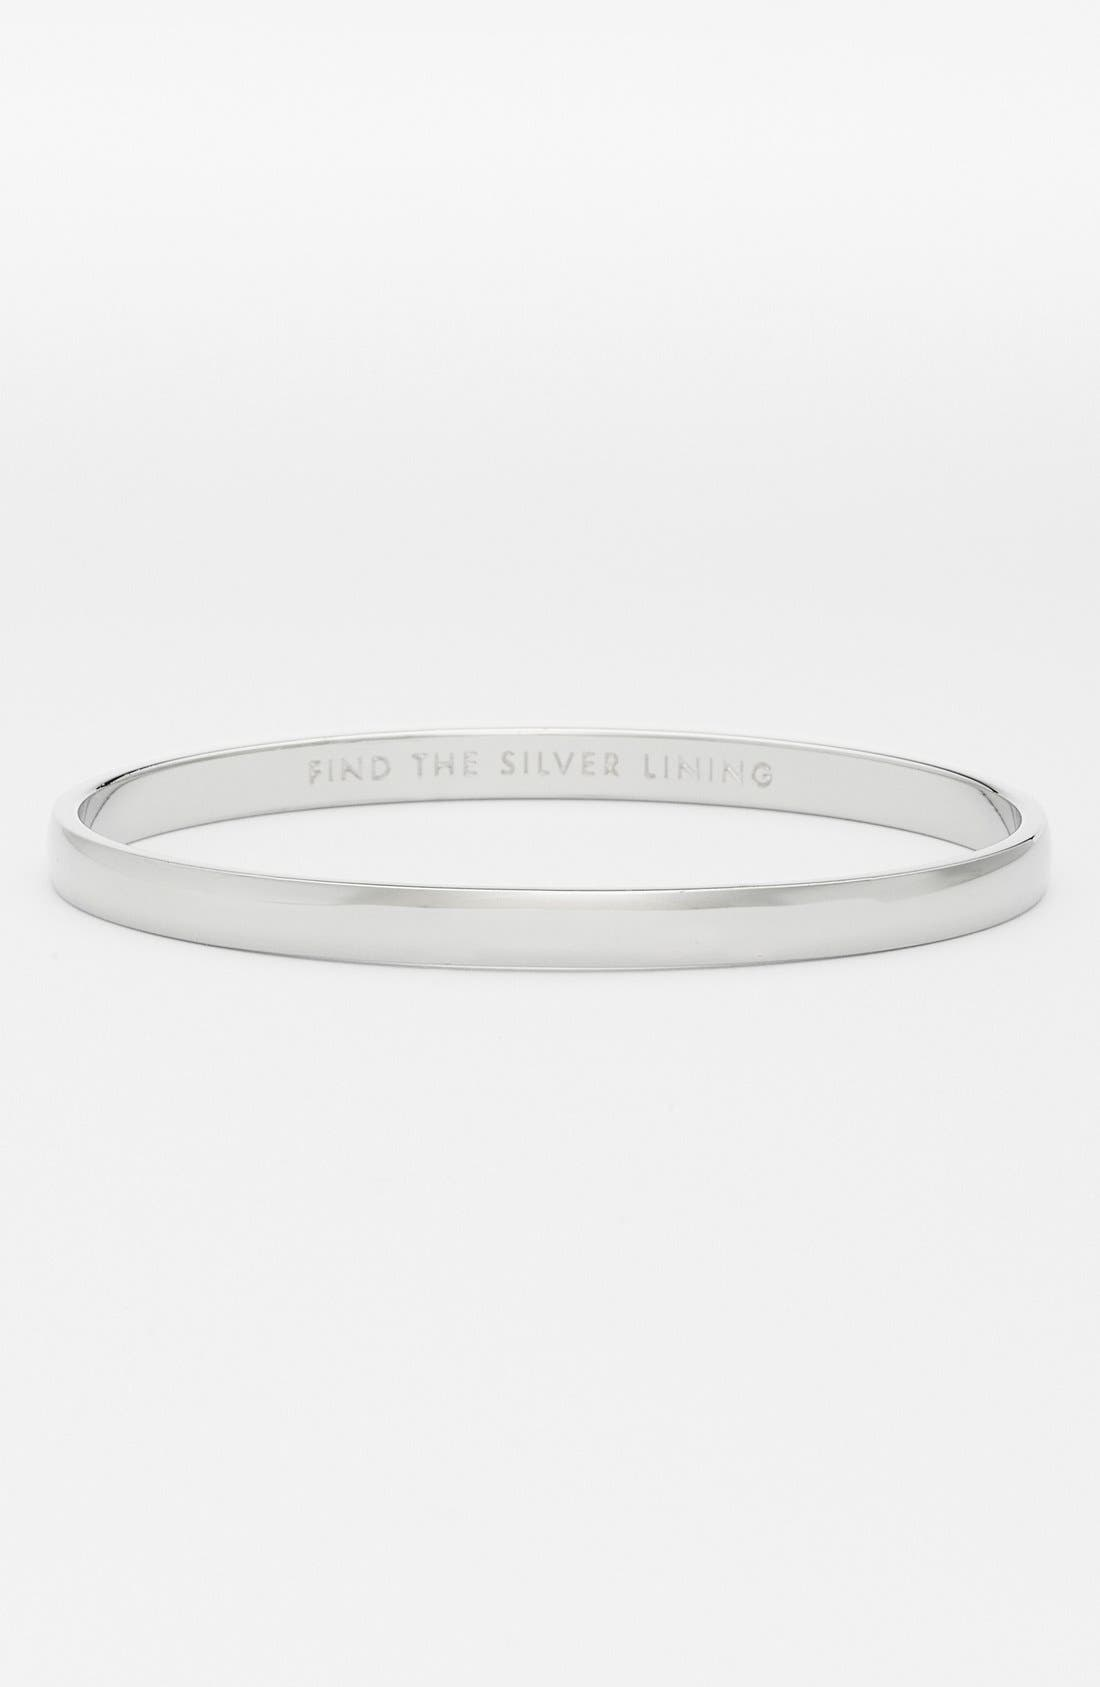 kate spade new york 'idiom - find the silver lining' bangle